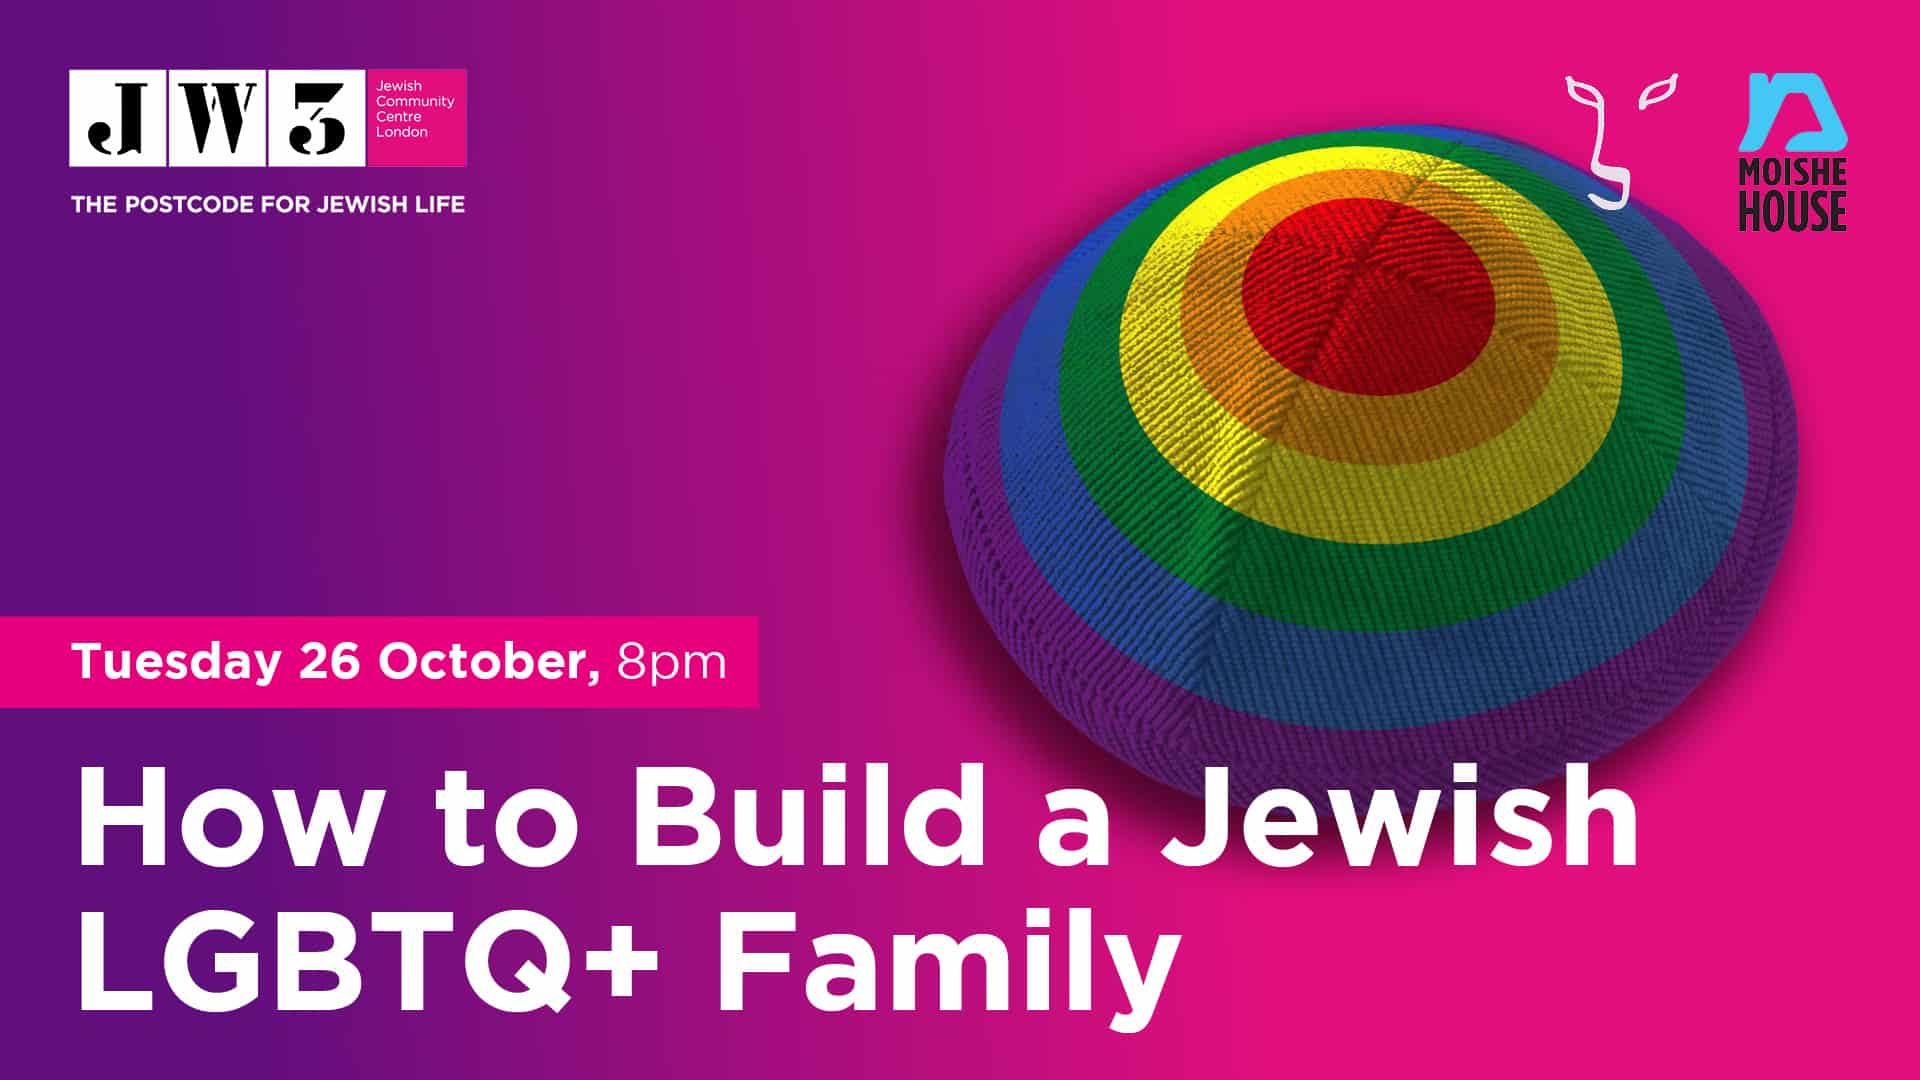 Young JW3: How to Build a Jewish LGBTQ+ Family